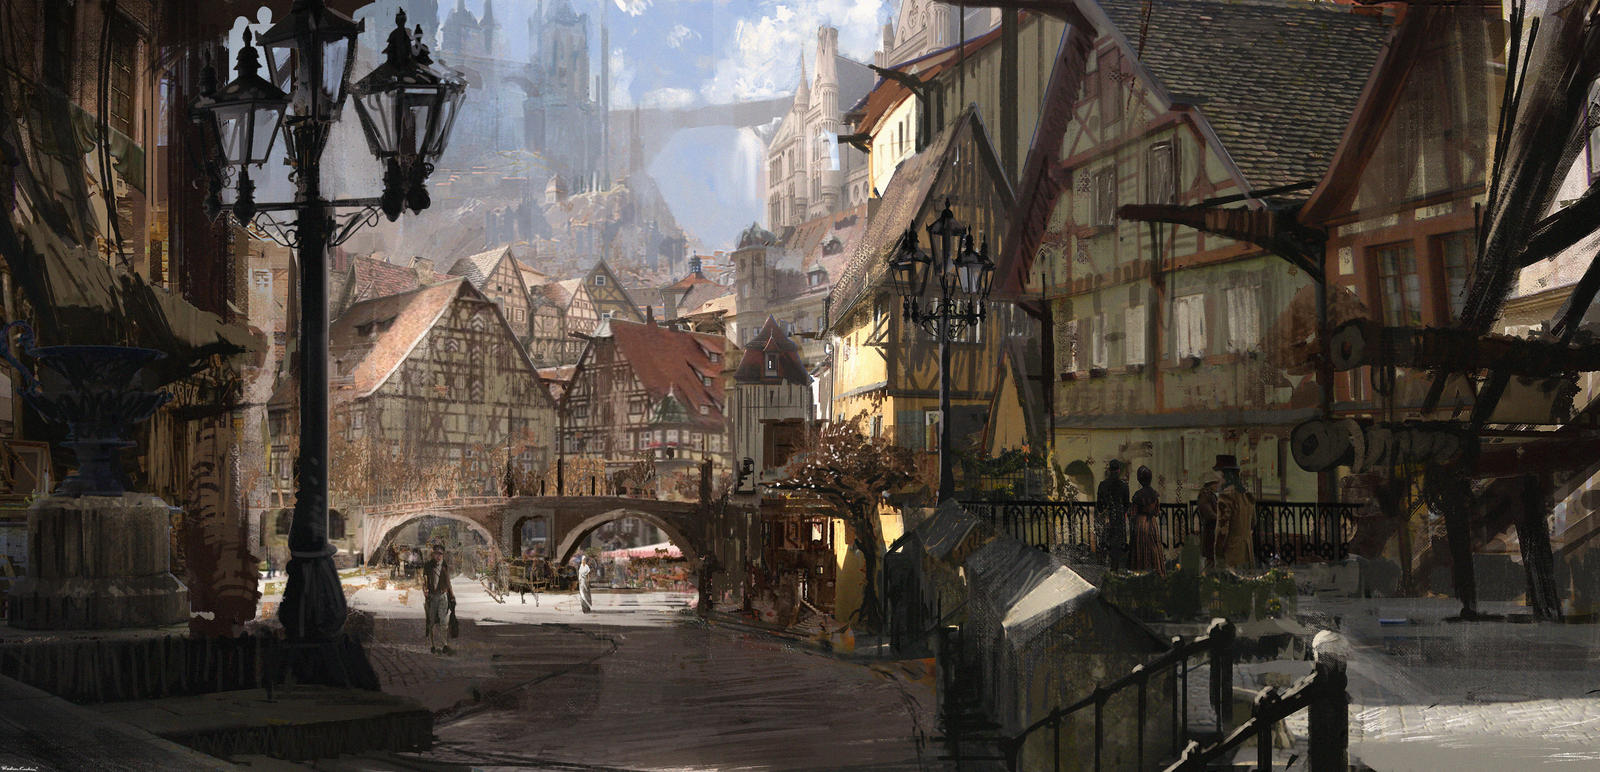 Grand Square iconcepti street by SolarSouth on DeviantArt